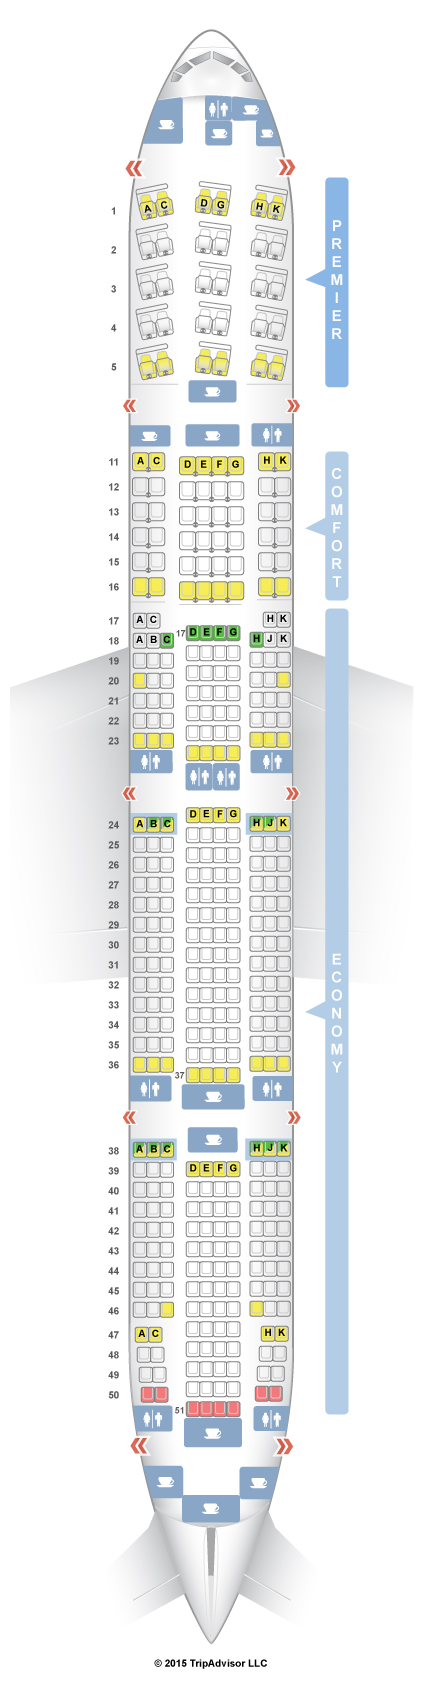 SeatGuru Seat Map Aeroflot